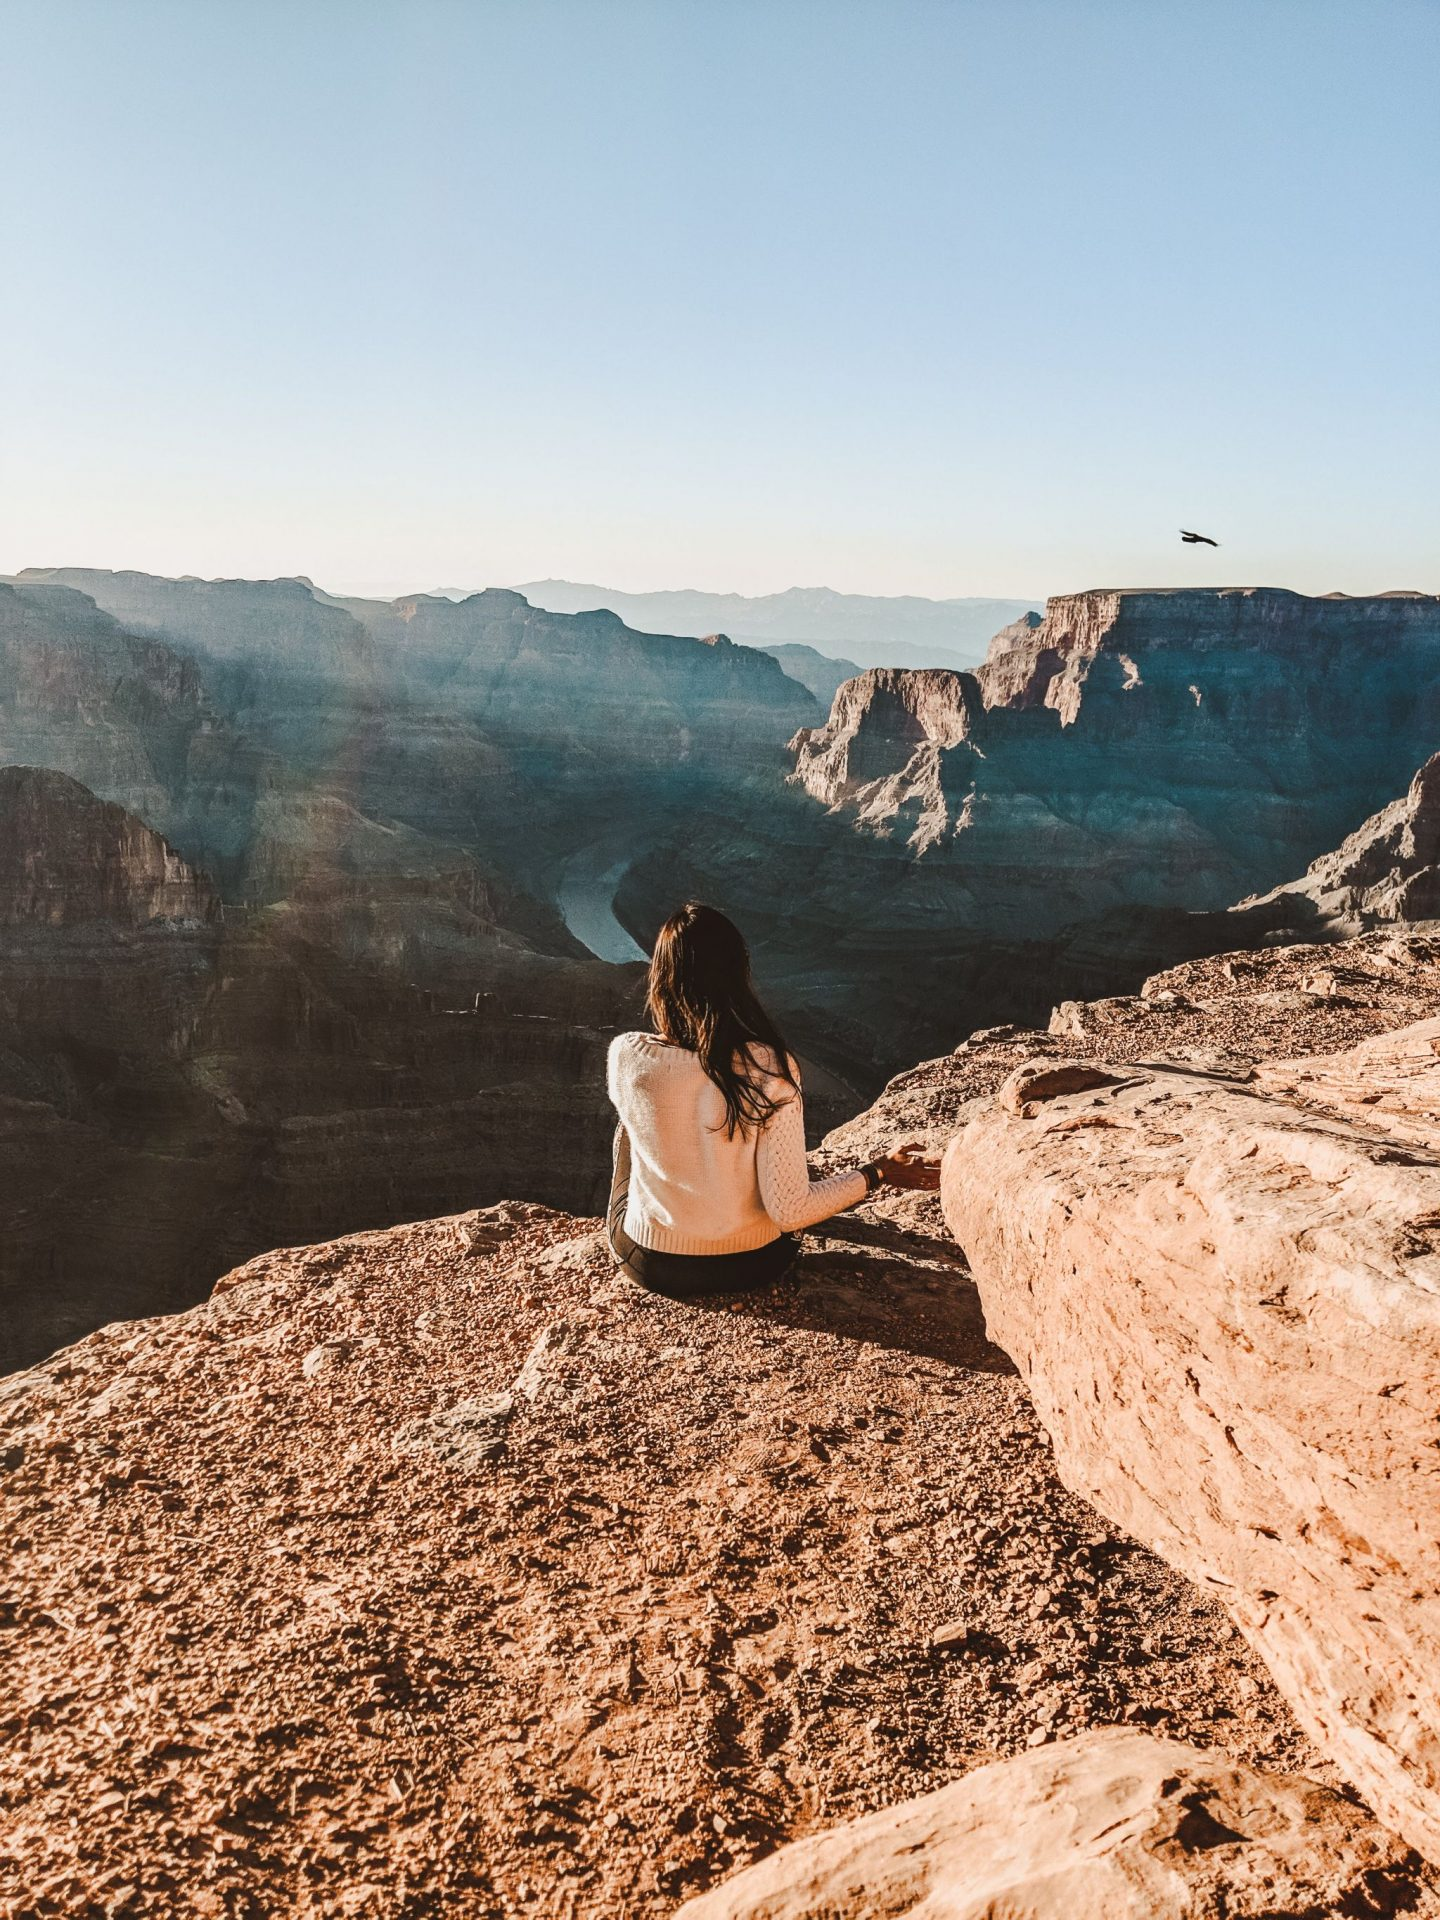 Visit the Grand Canyon day tour - by @danandnatty